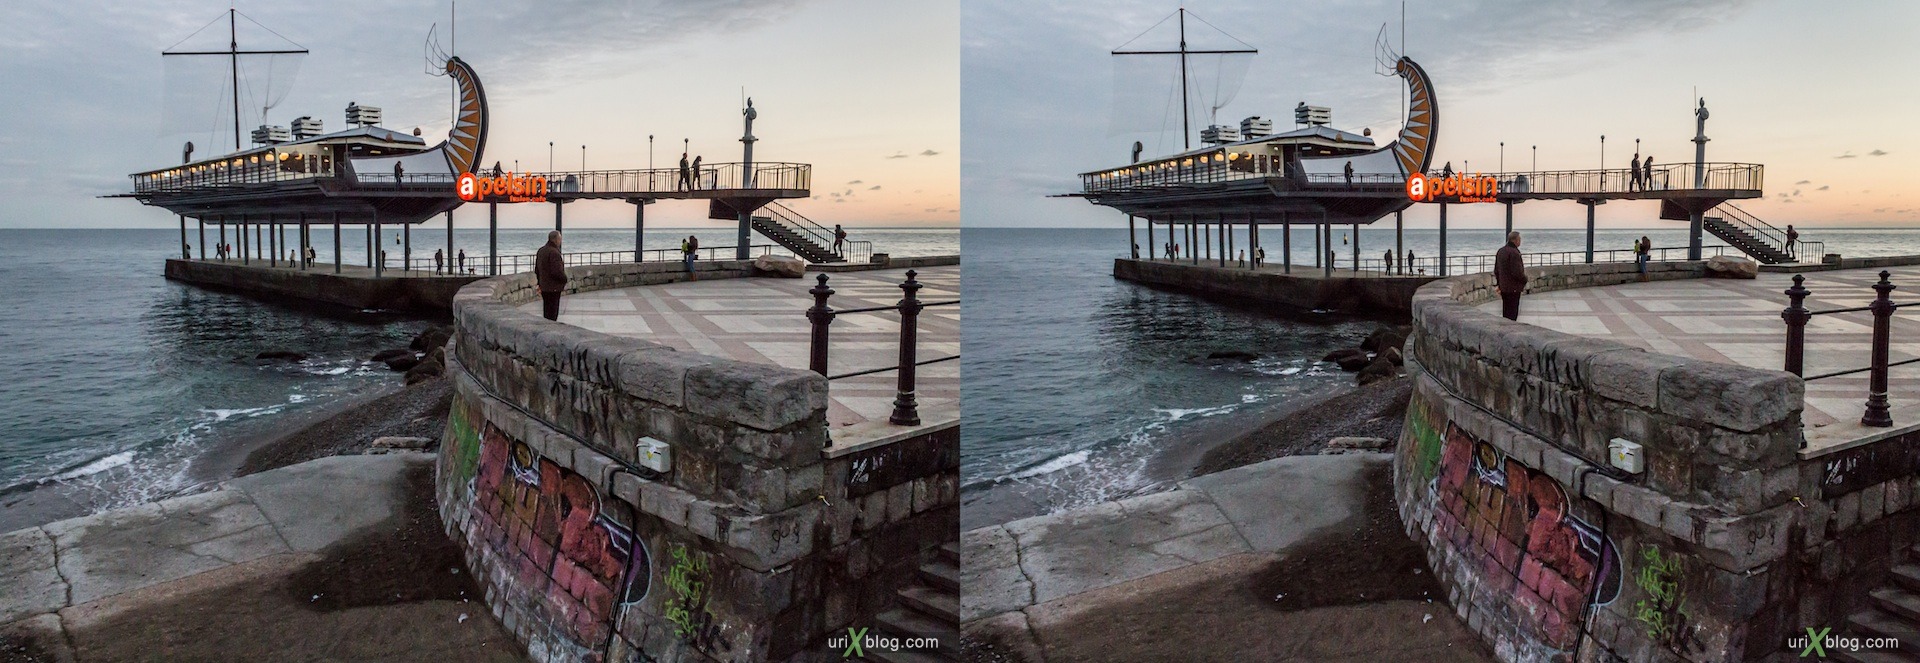 2012, Imeni Lenina embankment, Apelsin cafe, beach, Yalta, sea, evening, coast city, Crimea, Ukraine, 3D, stereo pair, cross-eyed, crossview, cross view stereo pair, stereoscopic